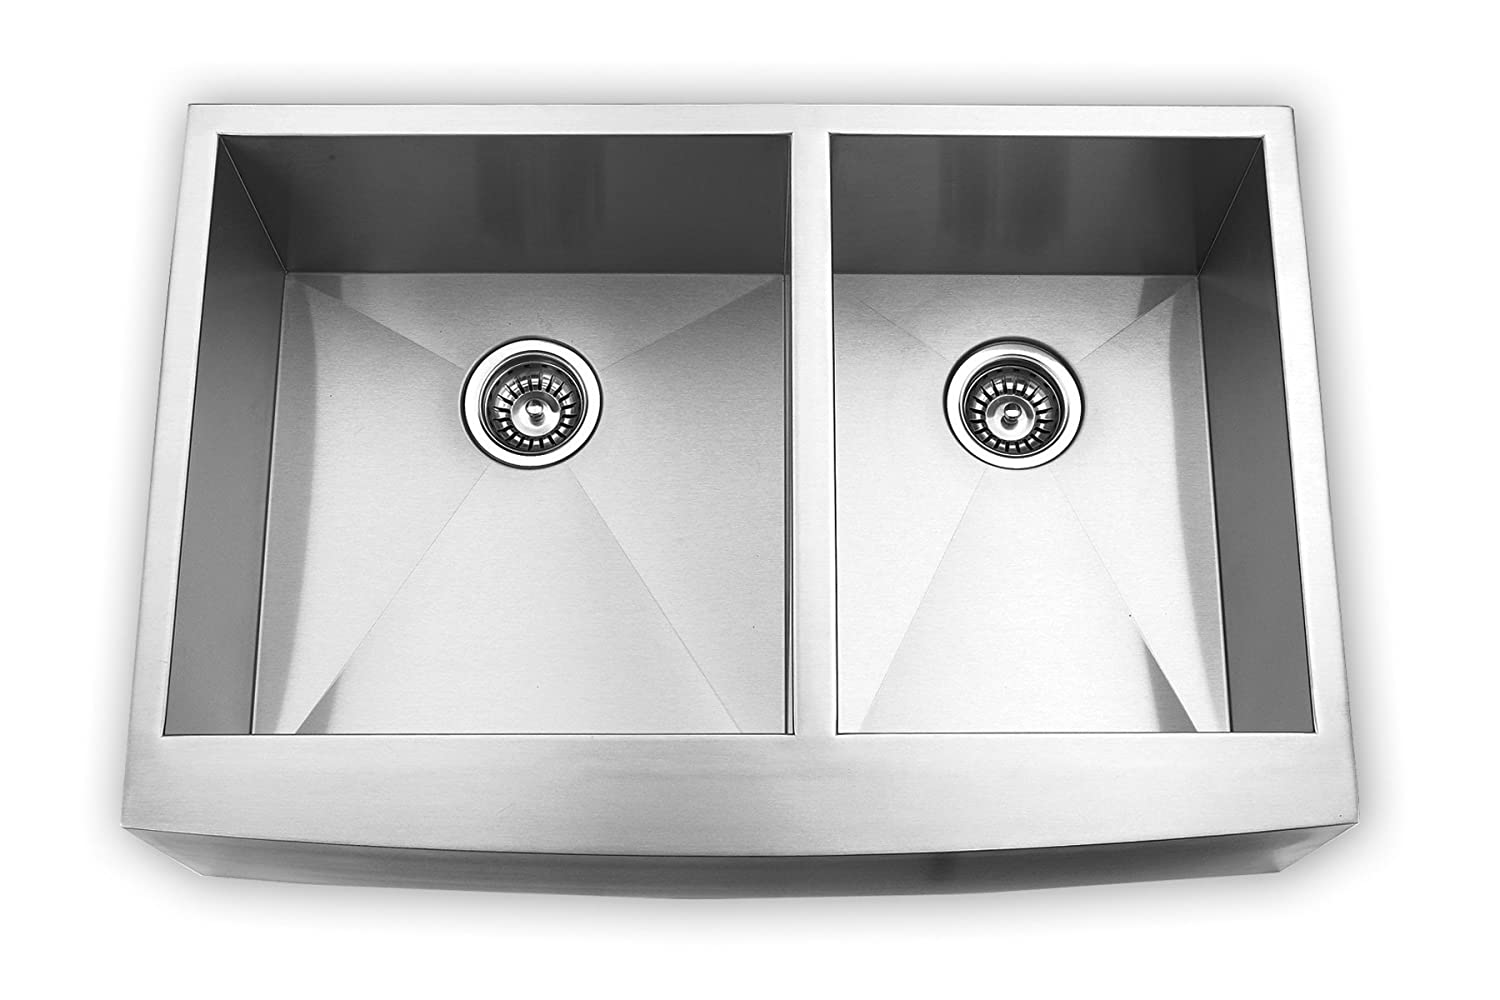 stainless undermount return double product kingston kitchen gourmetier steel brass previous sinks lightbox page to sink bowl